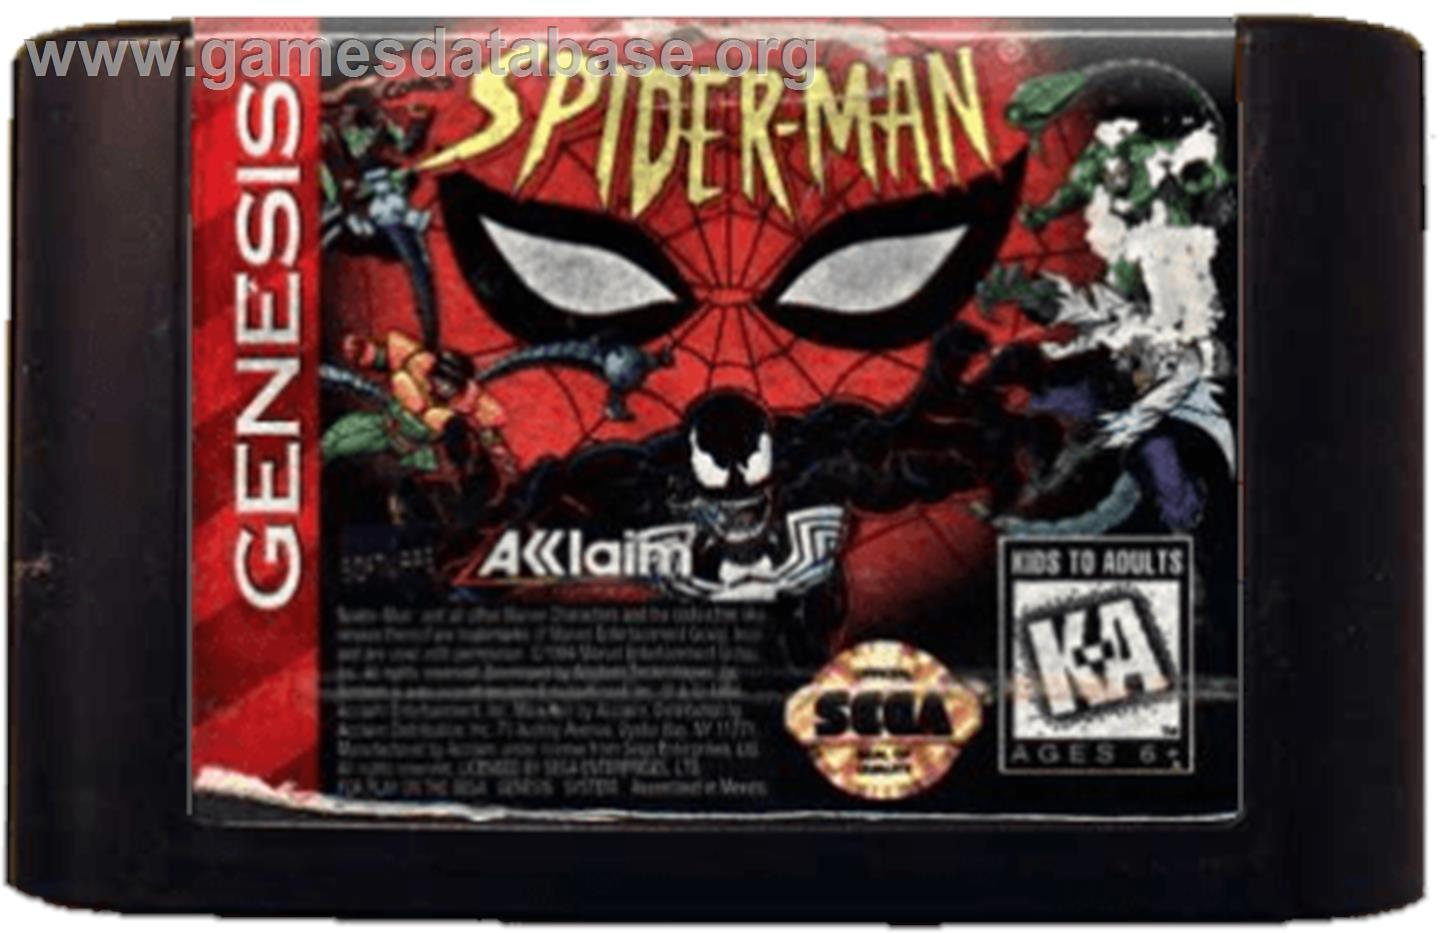 Spider-Man: The Animated Series - Sega Genesis - Artwork - Cartridge